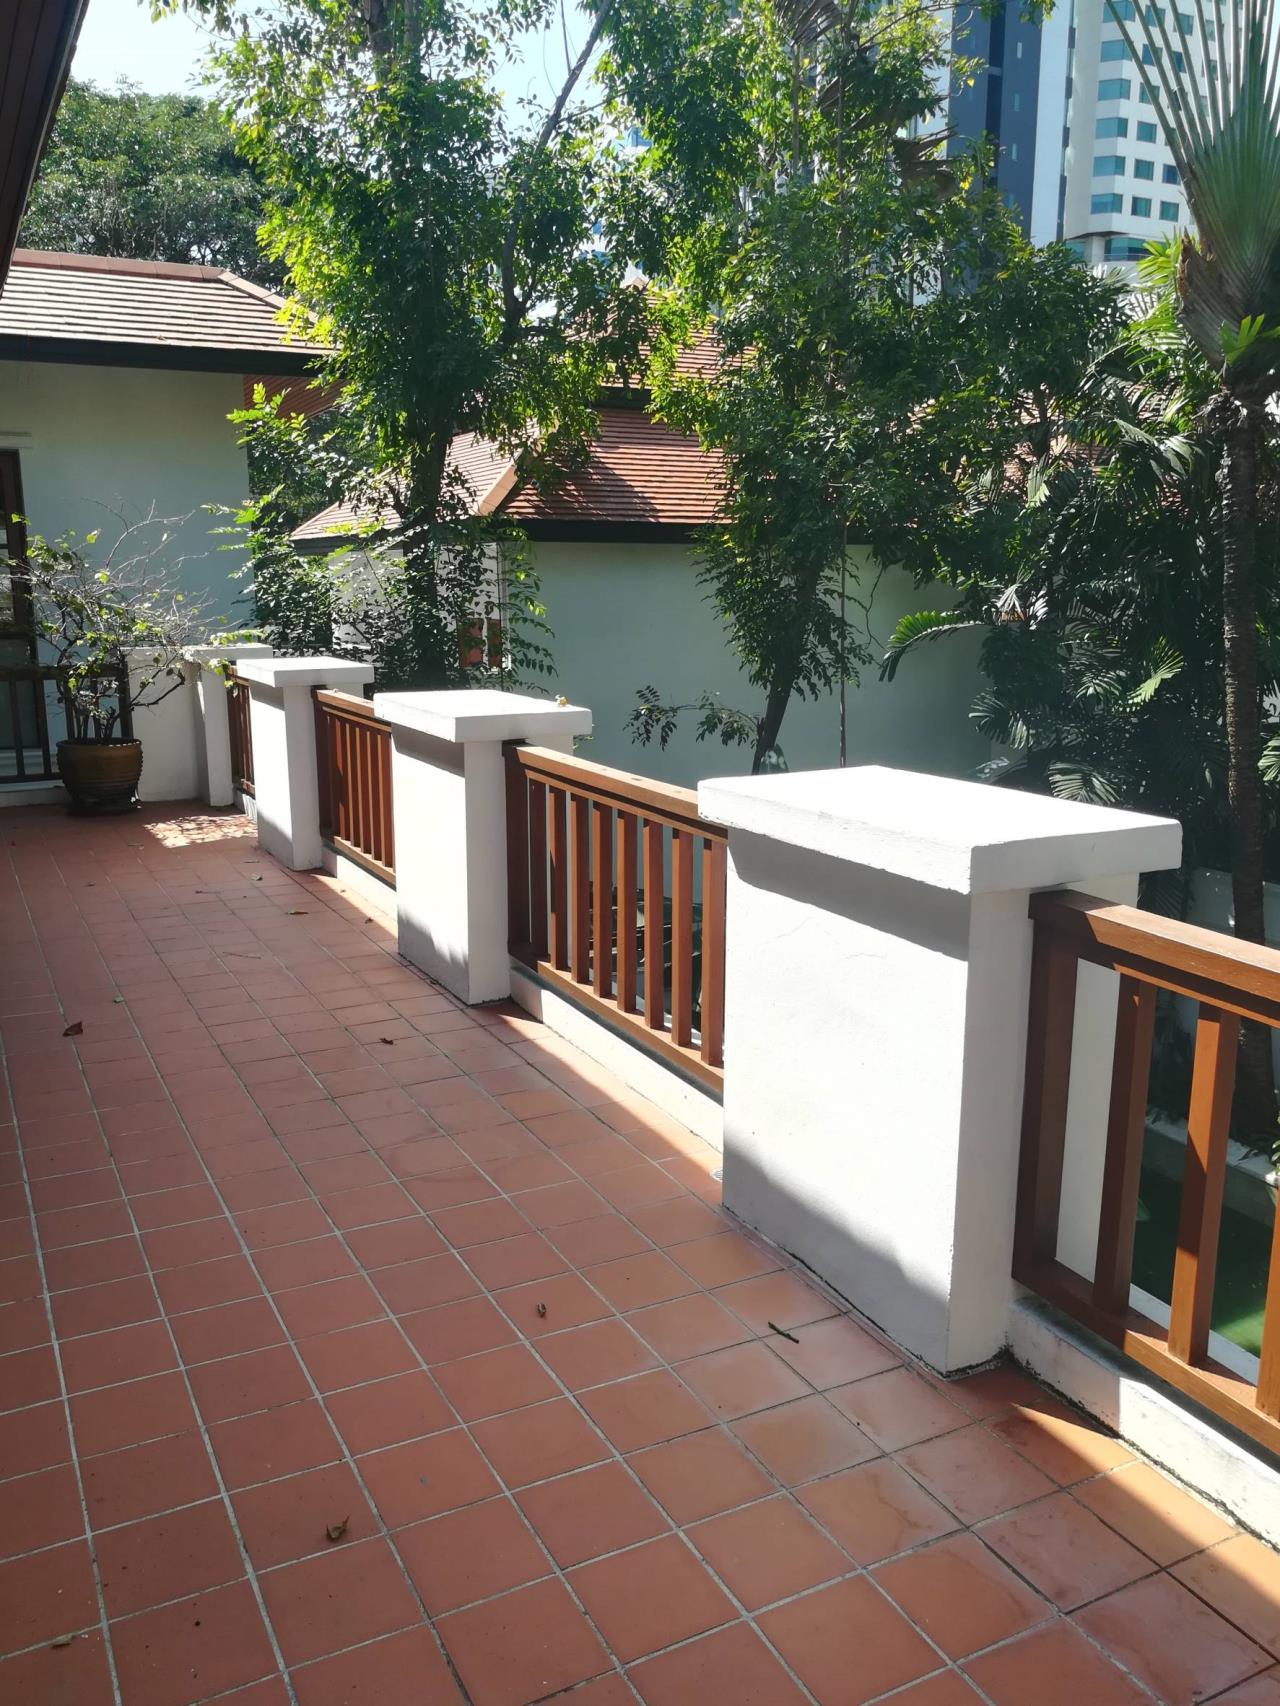 Professional One Service Agency's Detached house with private pool near BTS Asoke 6